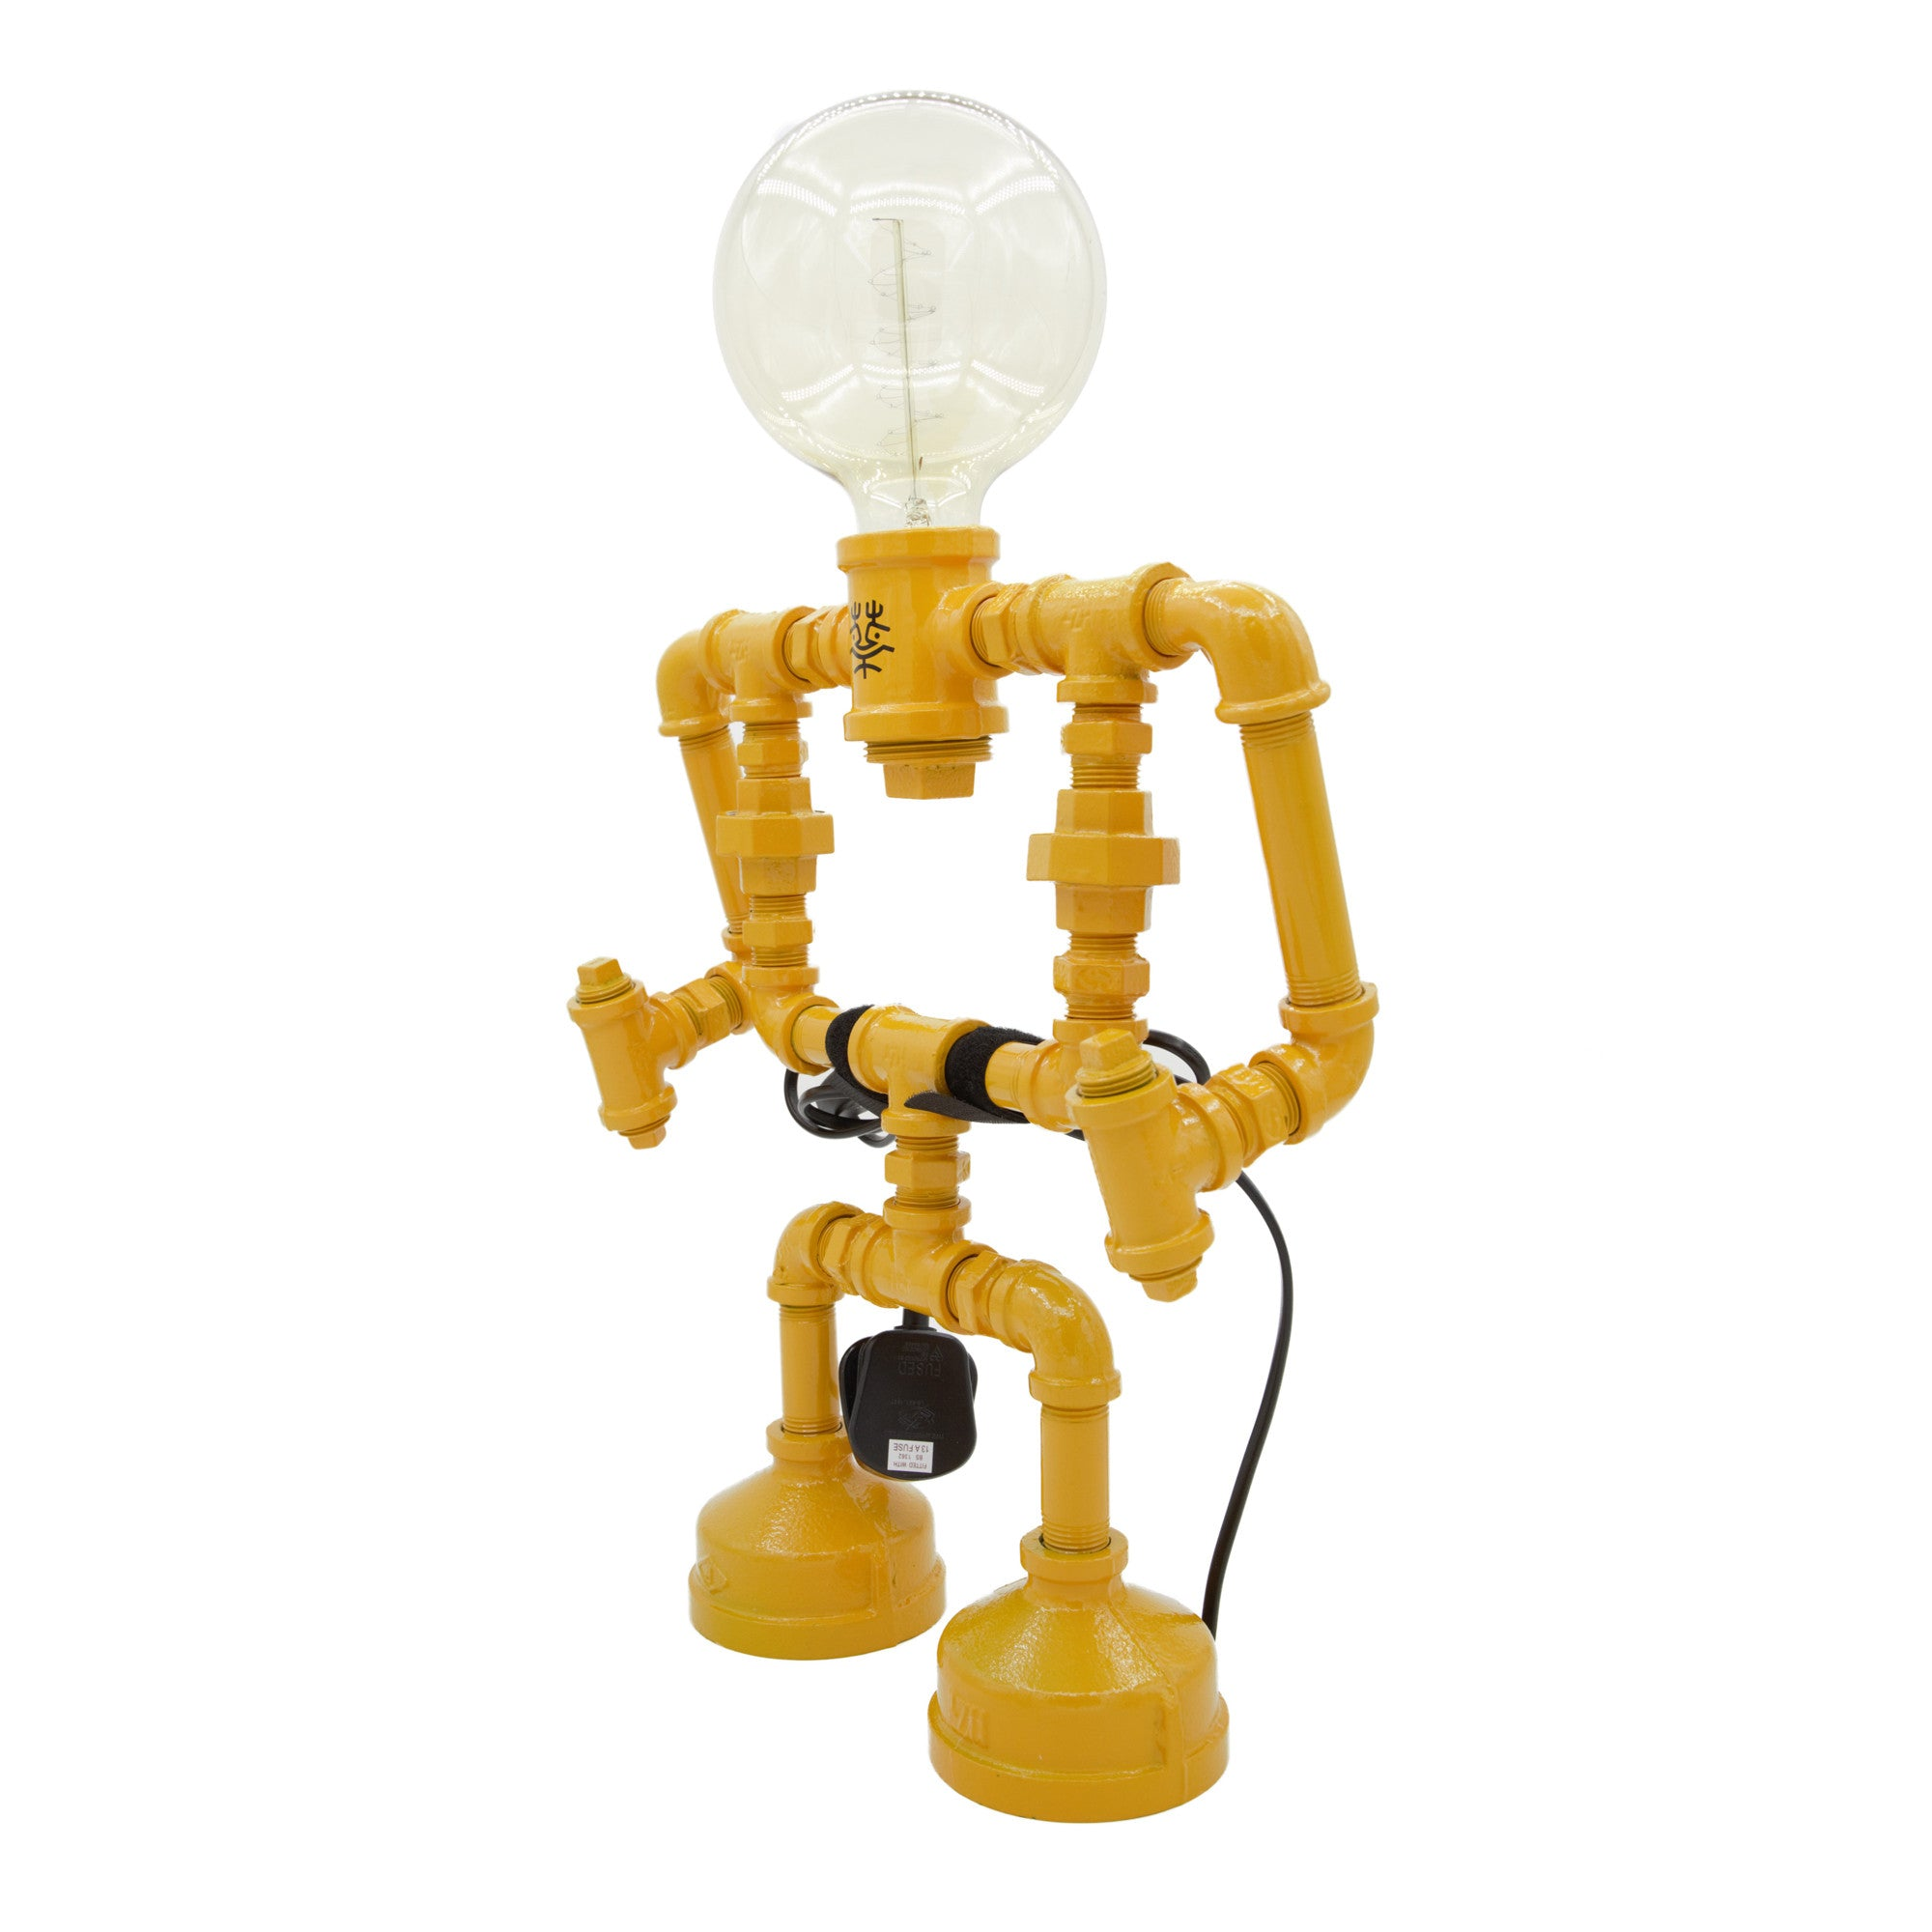 Touch Sensitive Robot Table Lamp - Large